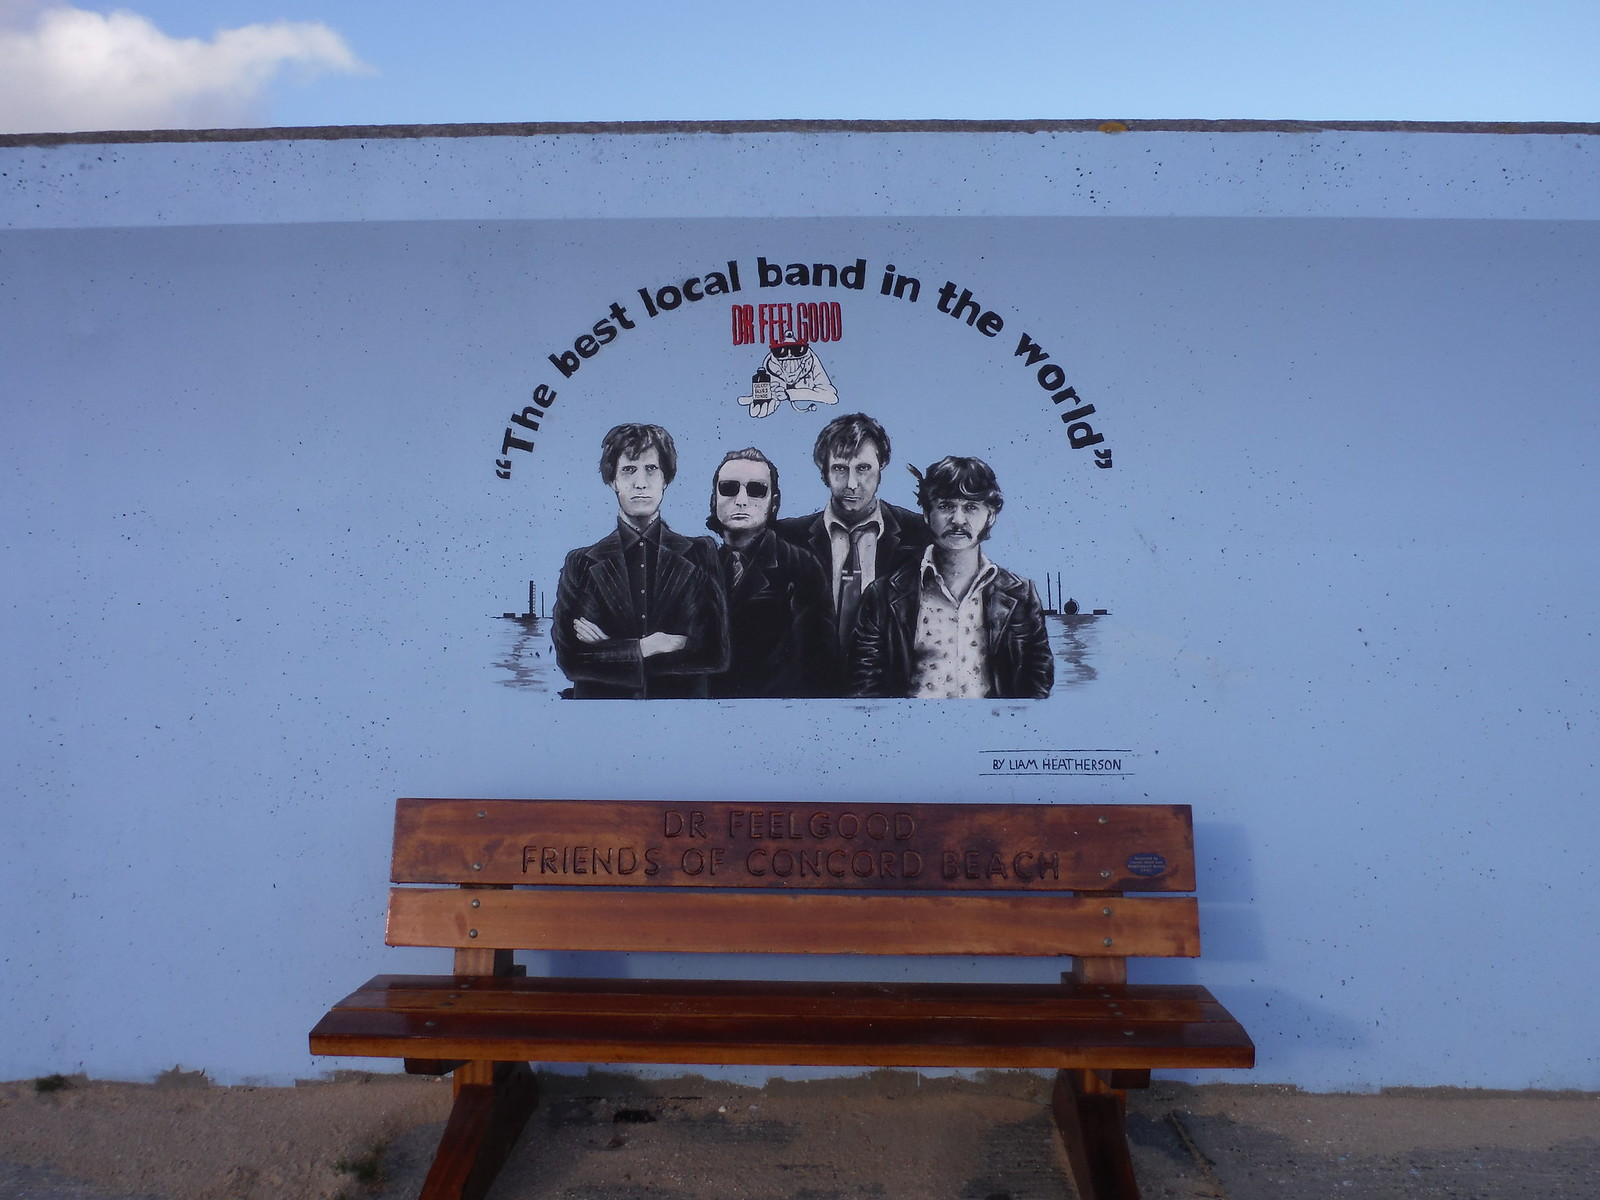 Dr. Feelgood bench and mural, Concord Beach, Canvey Island SWC Walk 258 Benfleet Circular (via Canvey Island)